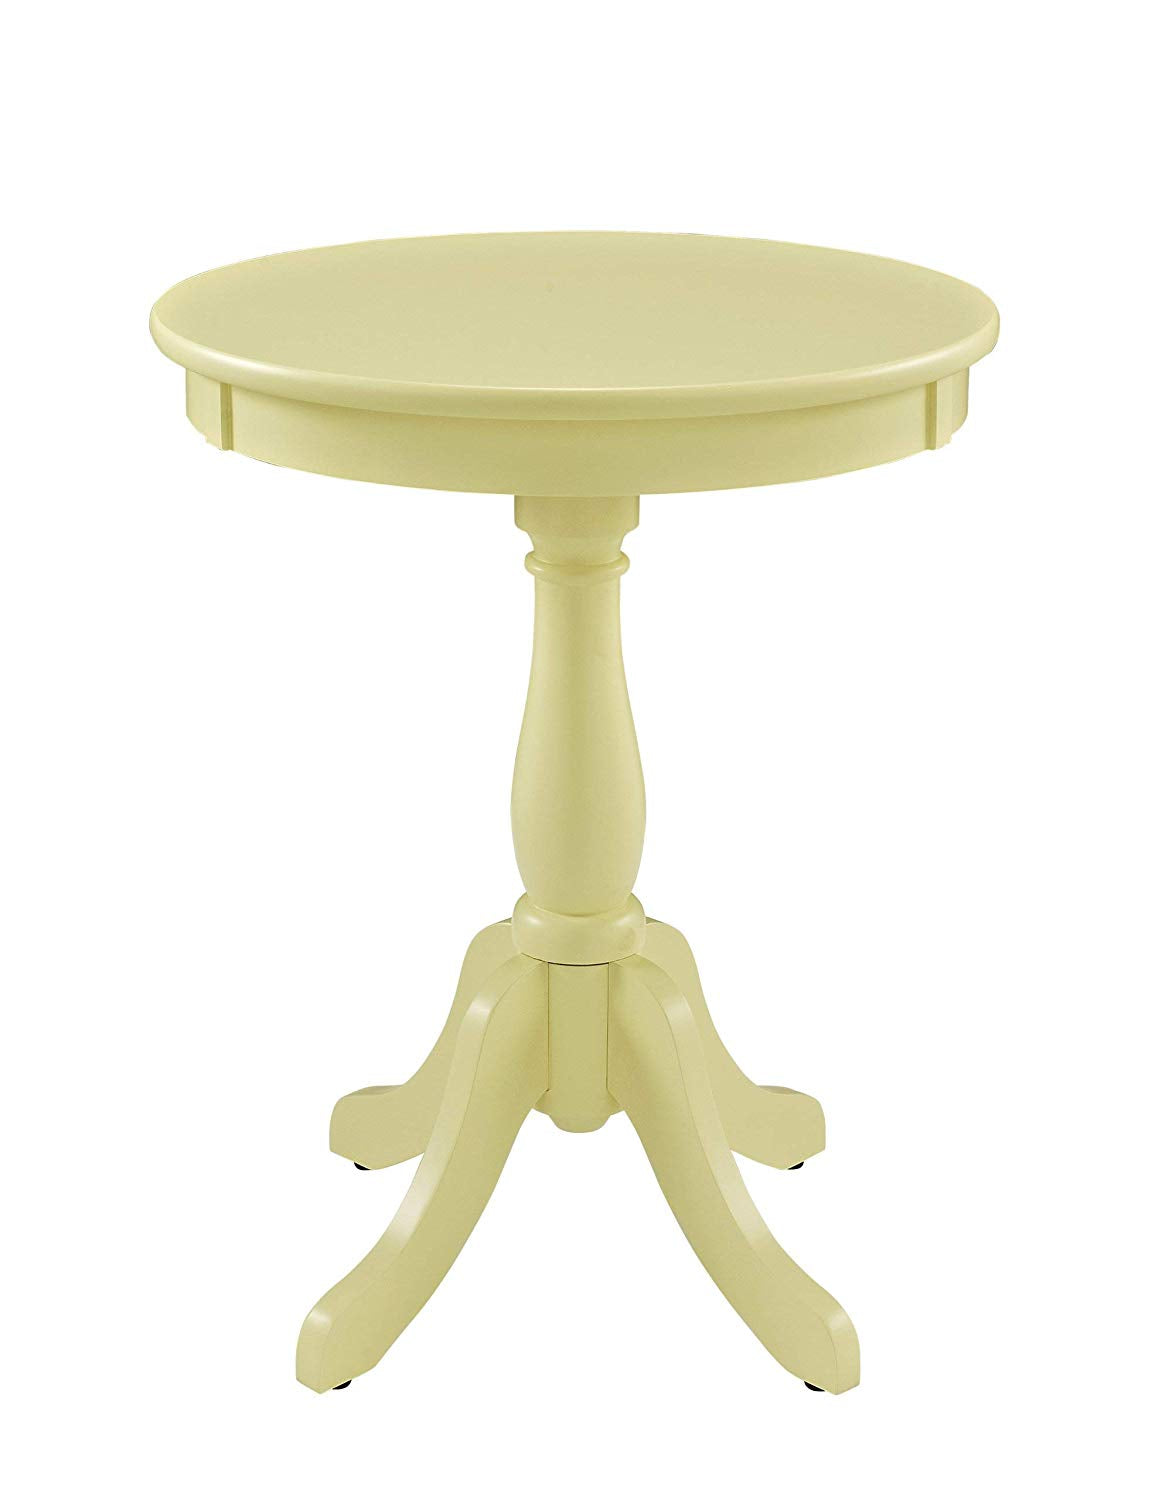 Powell's Furniture 929-711 Powell Round Accent, White Table,